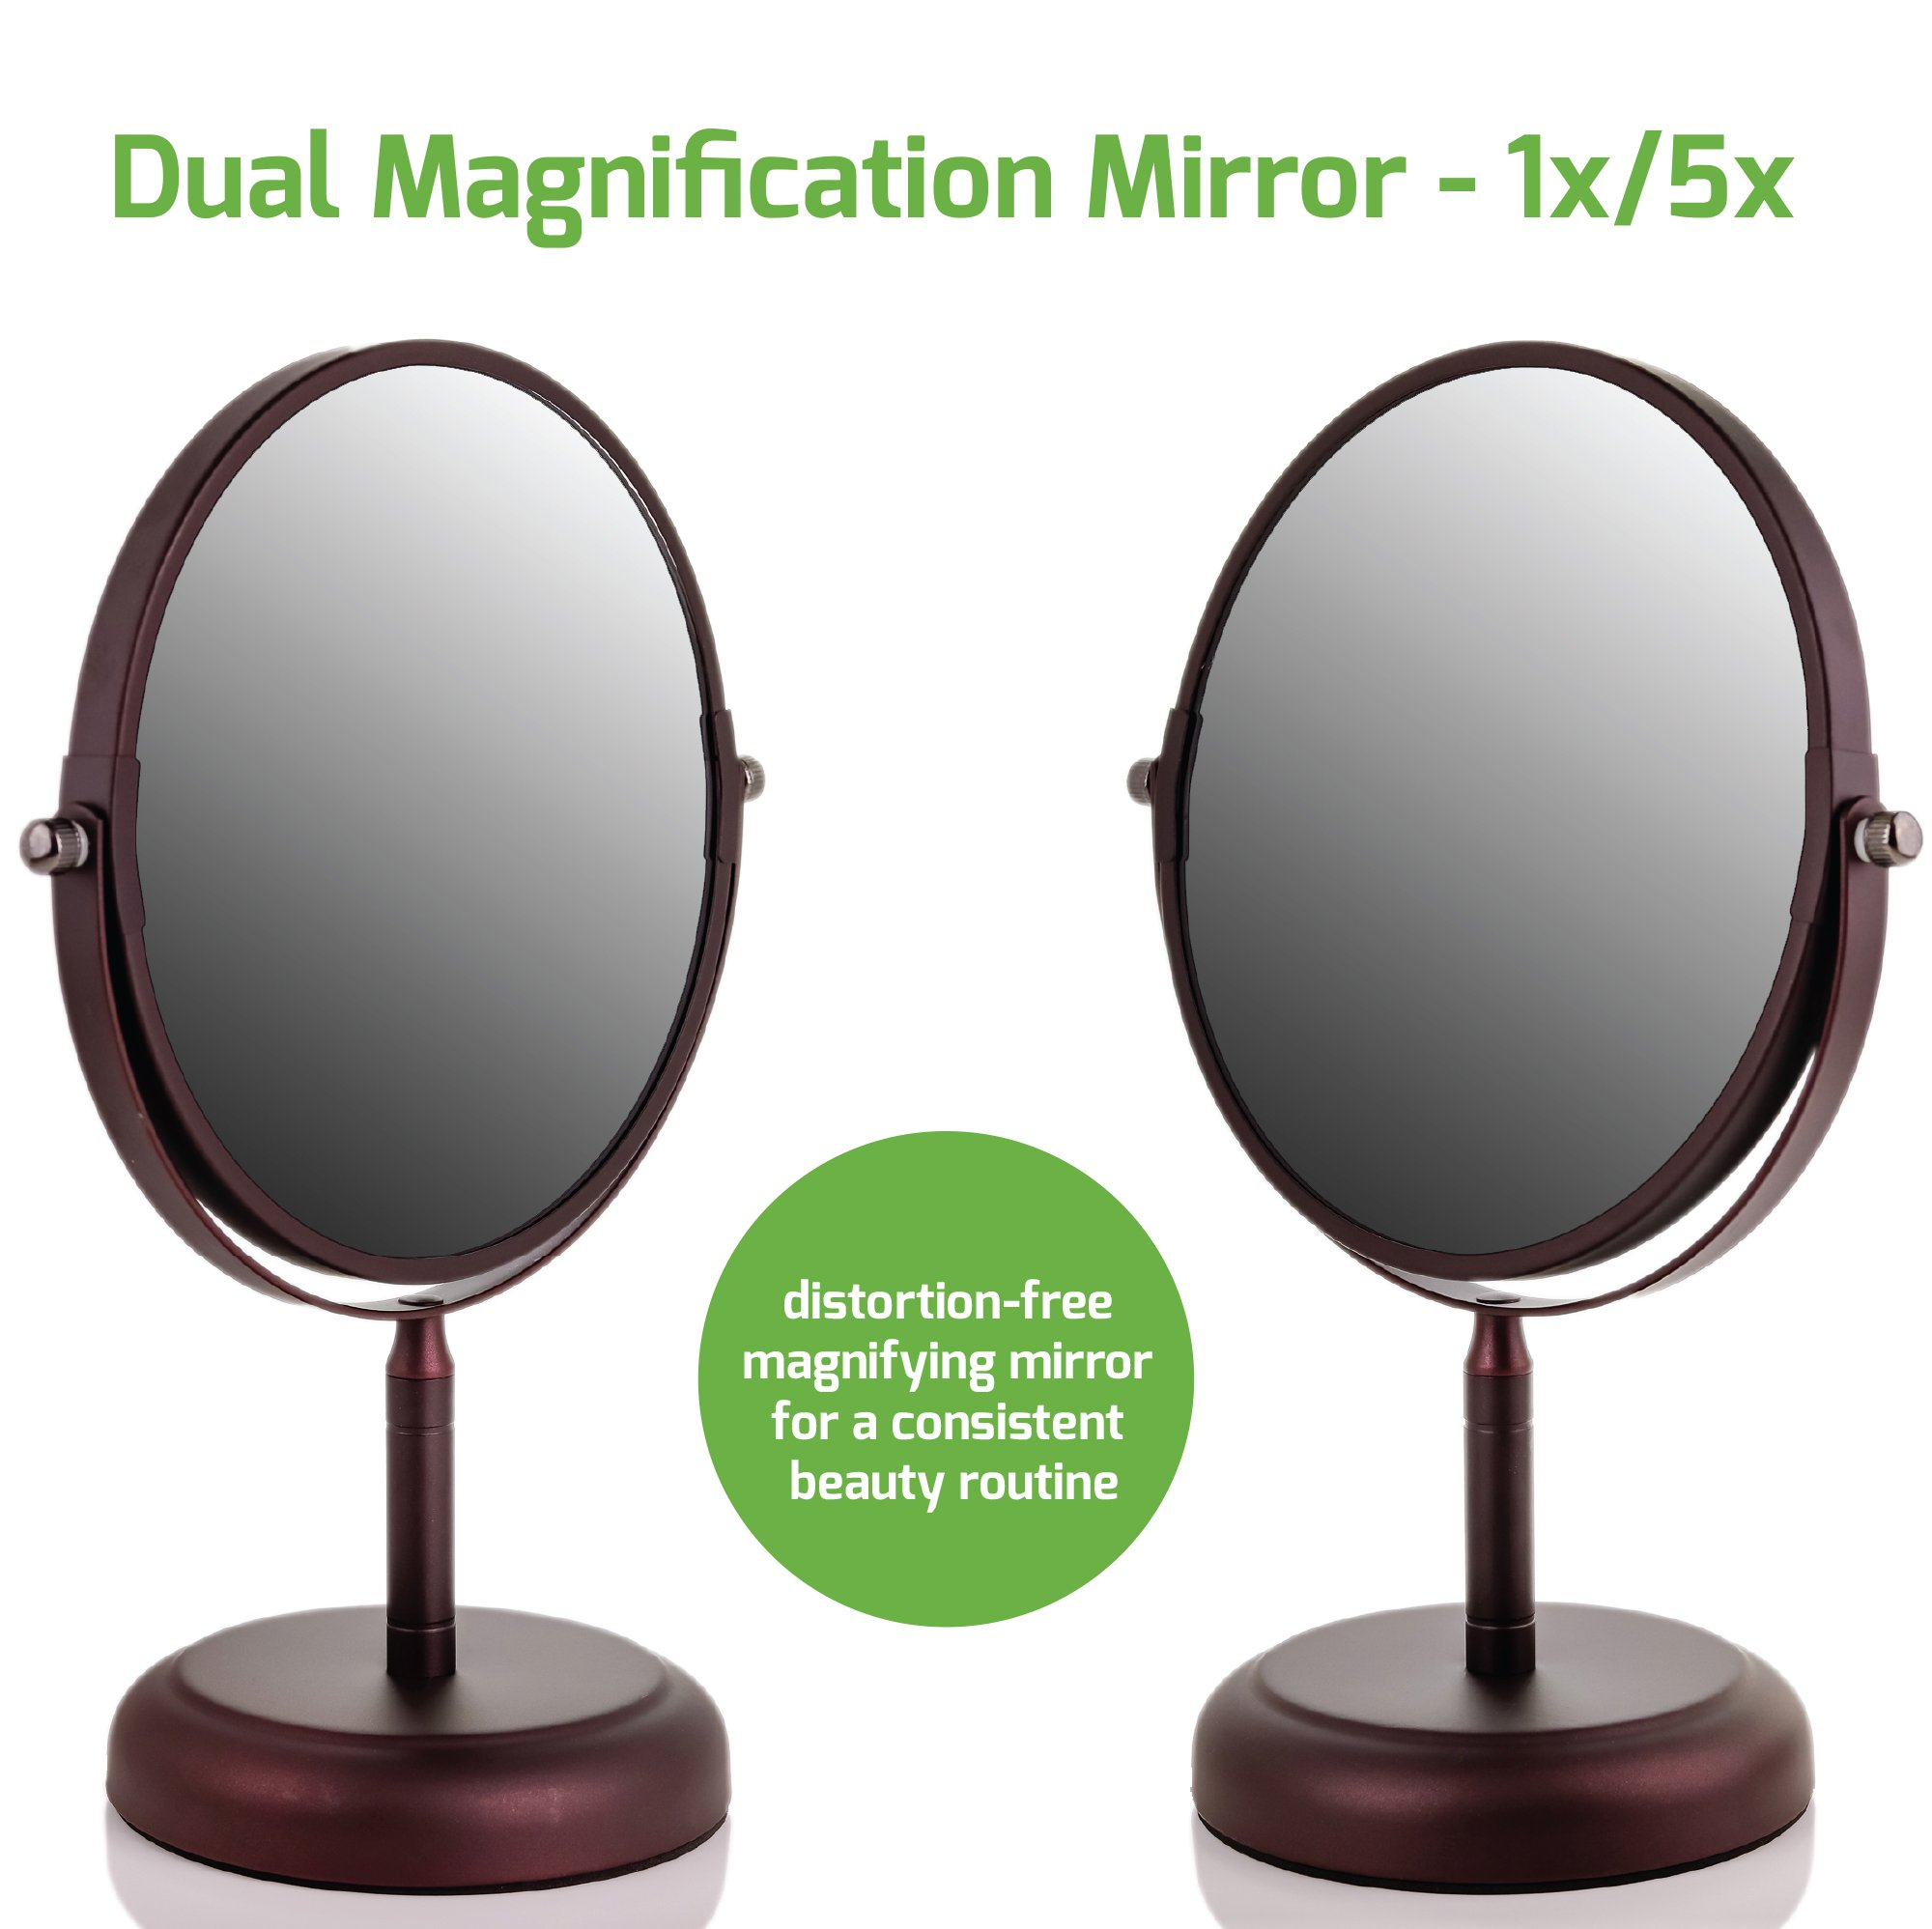 Ovente Round Tabletop Vanity Mirror, 7 Inch, Dual-Sided with 1x/5x magnification, Antique Bronze (MNLDT70ABZ1X5X) by Ovente (Image #3)